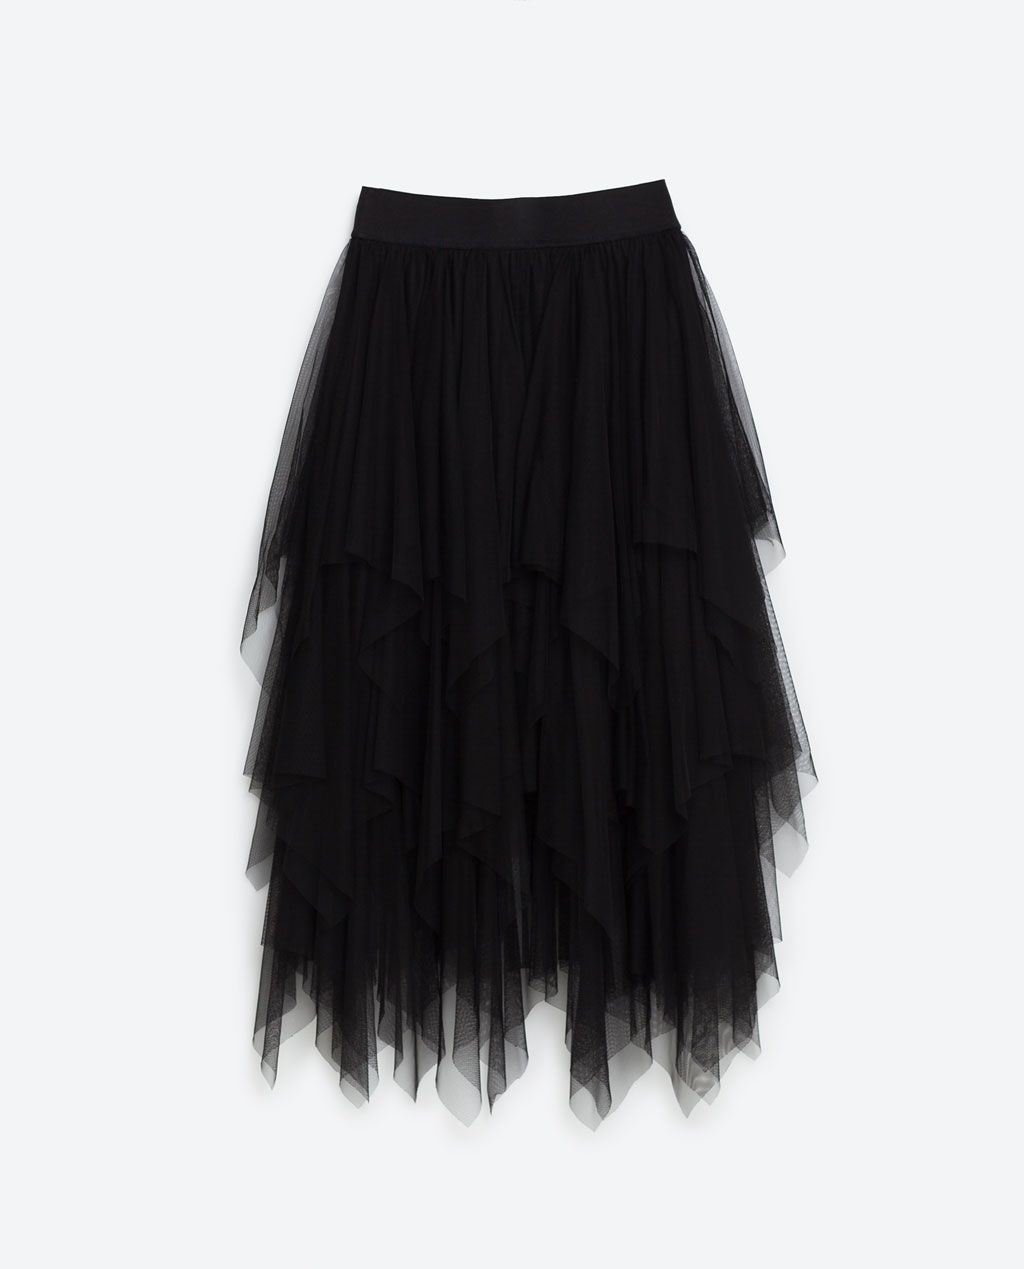 195bc87532 Image 8 of FRILLY TULLE SKIRT from Zara Grey Maxi Skirts, Long Striped  Skirts,